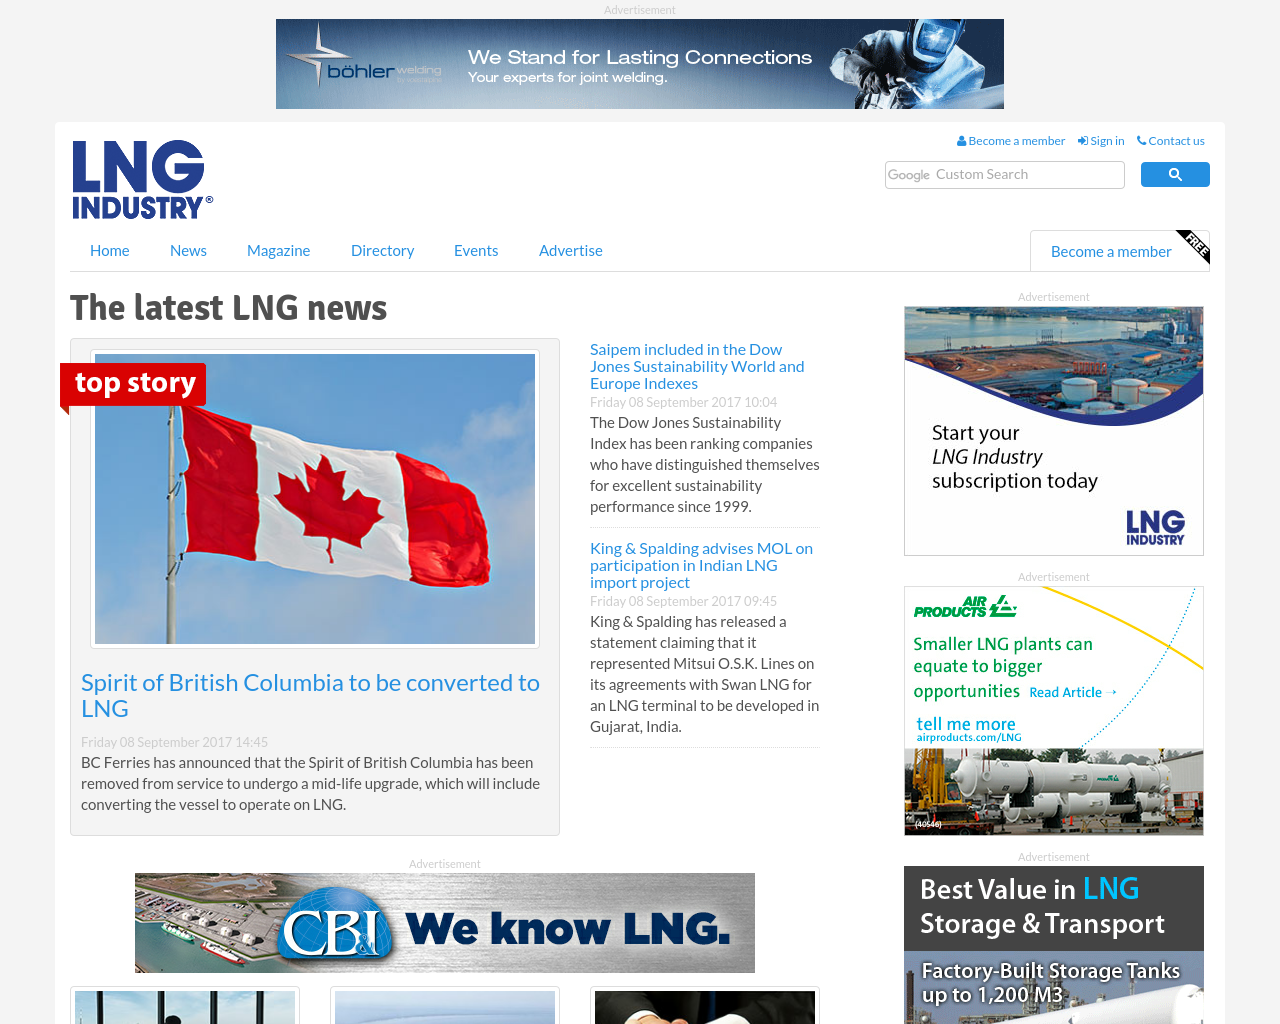 LNG-Industry-Advertising-Reviews-Pricing